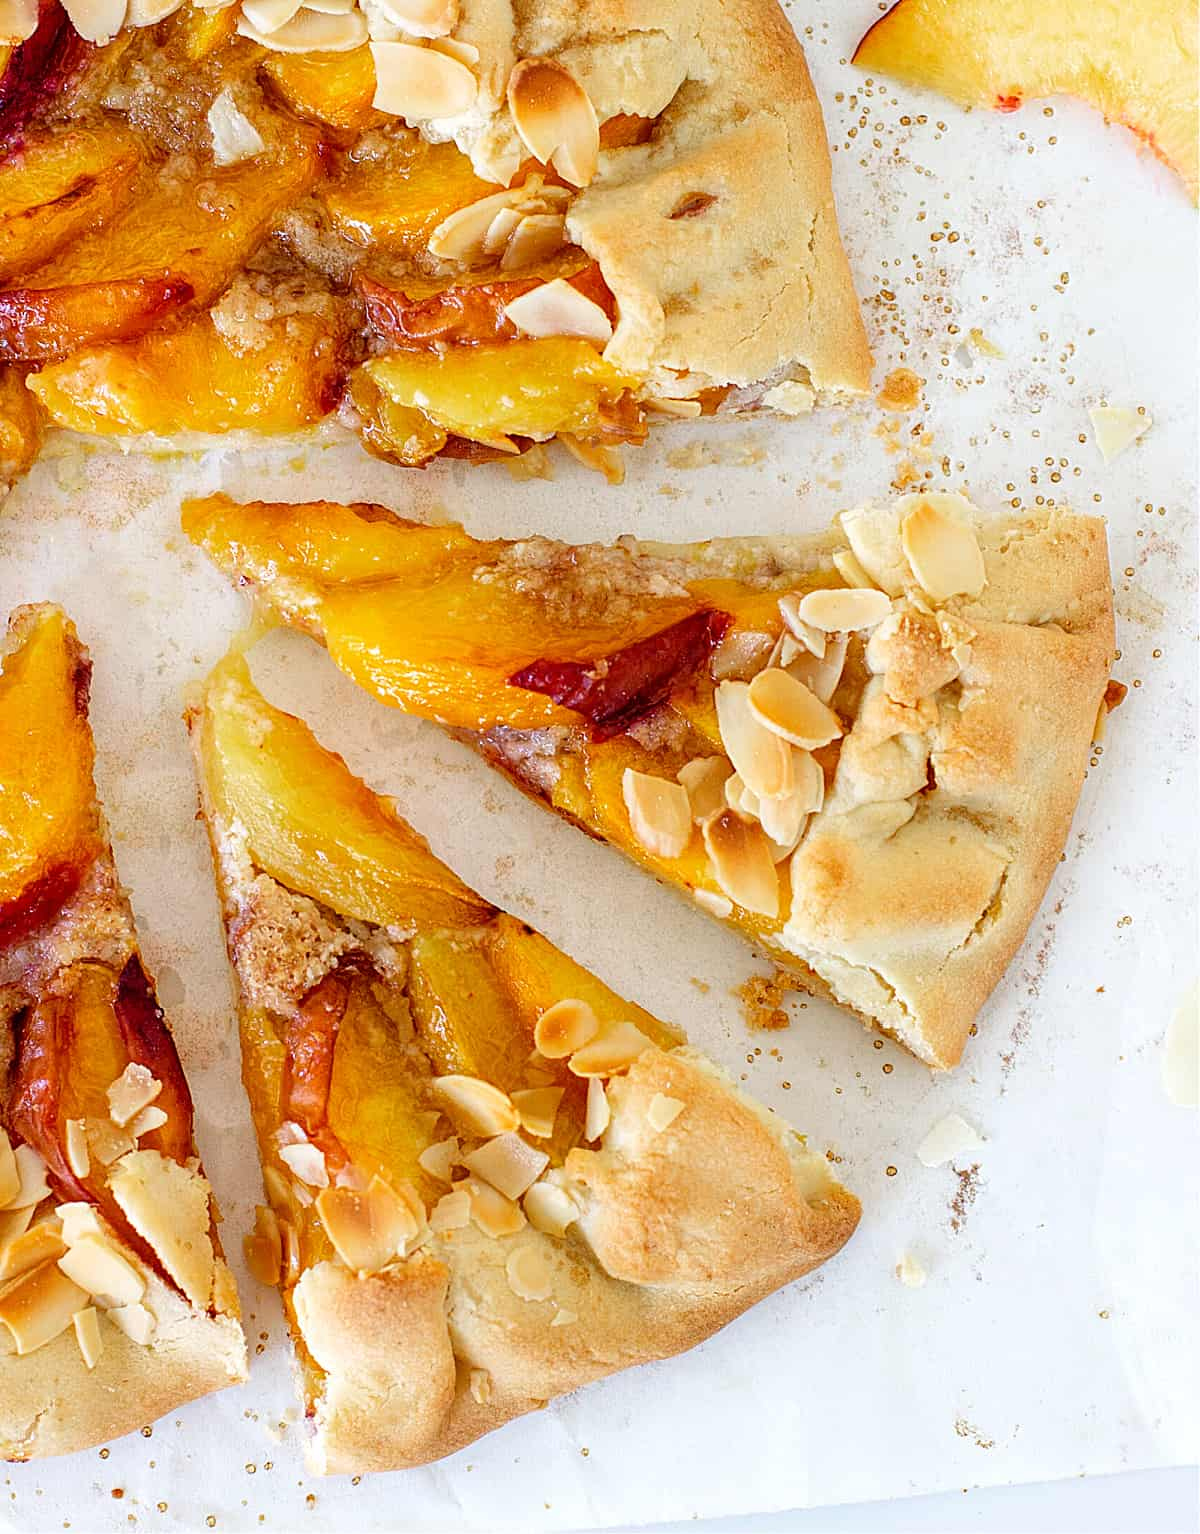 Half a free-form peach tart with almonds, white surface, cut slices